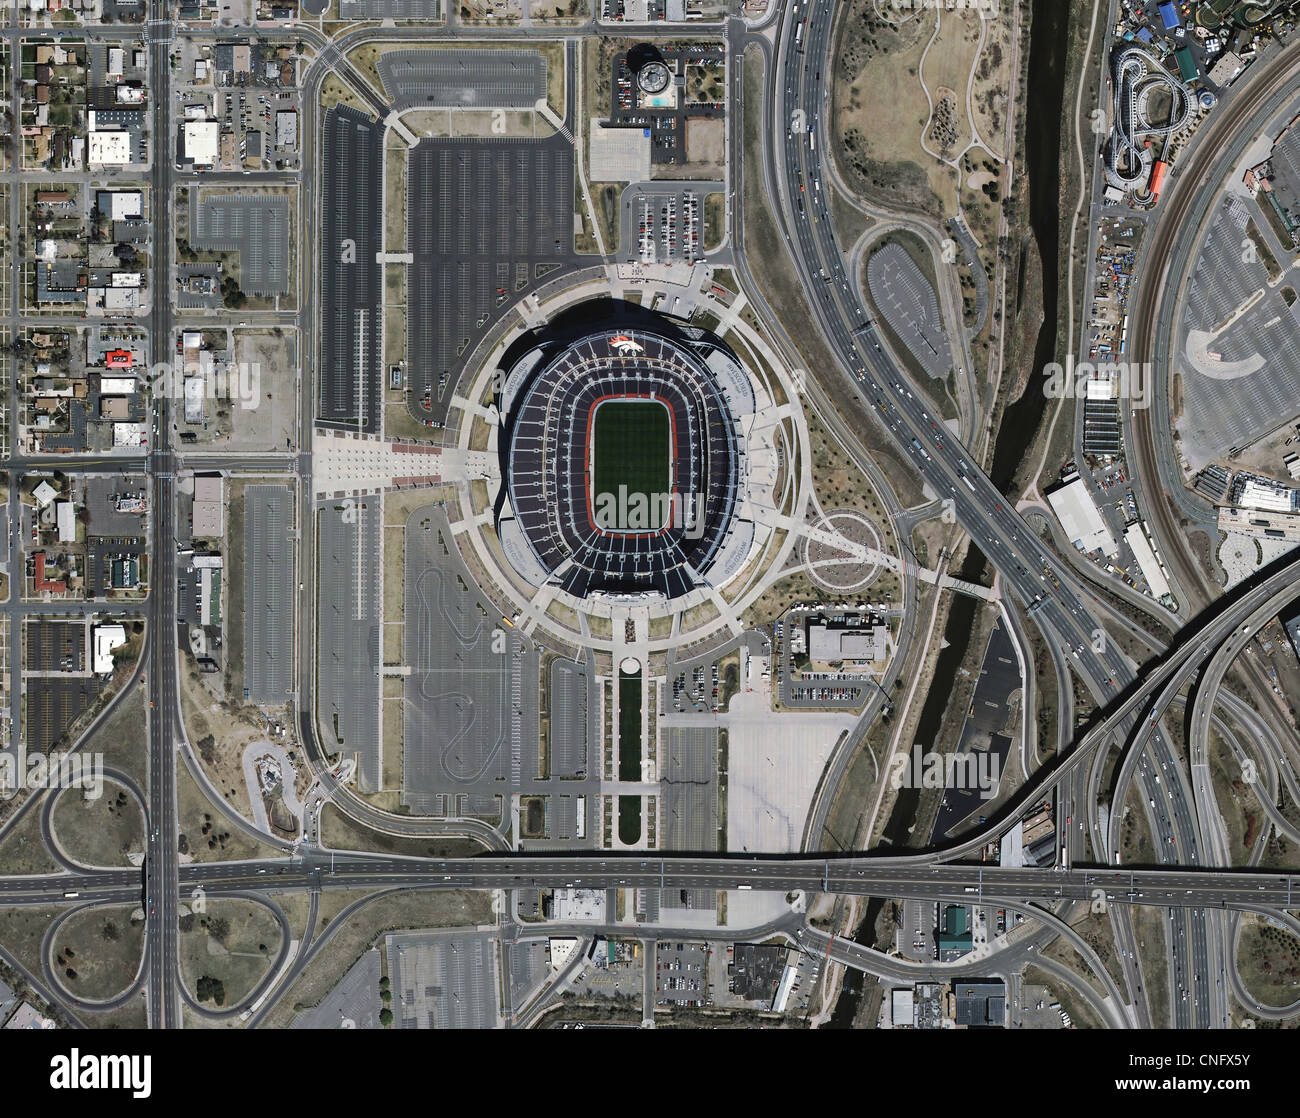 aerial photo map of freeway access to Denver Sports Authority Mile High stadium Colorado - Stock Image